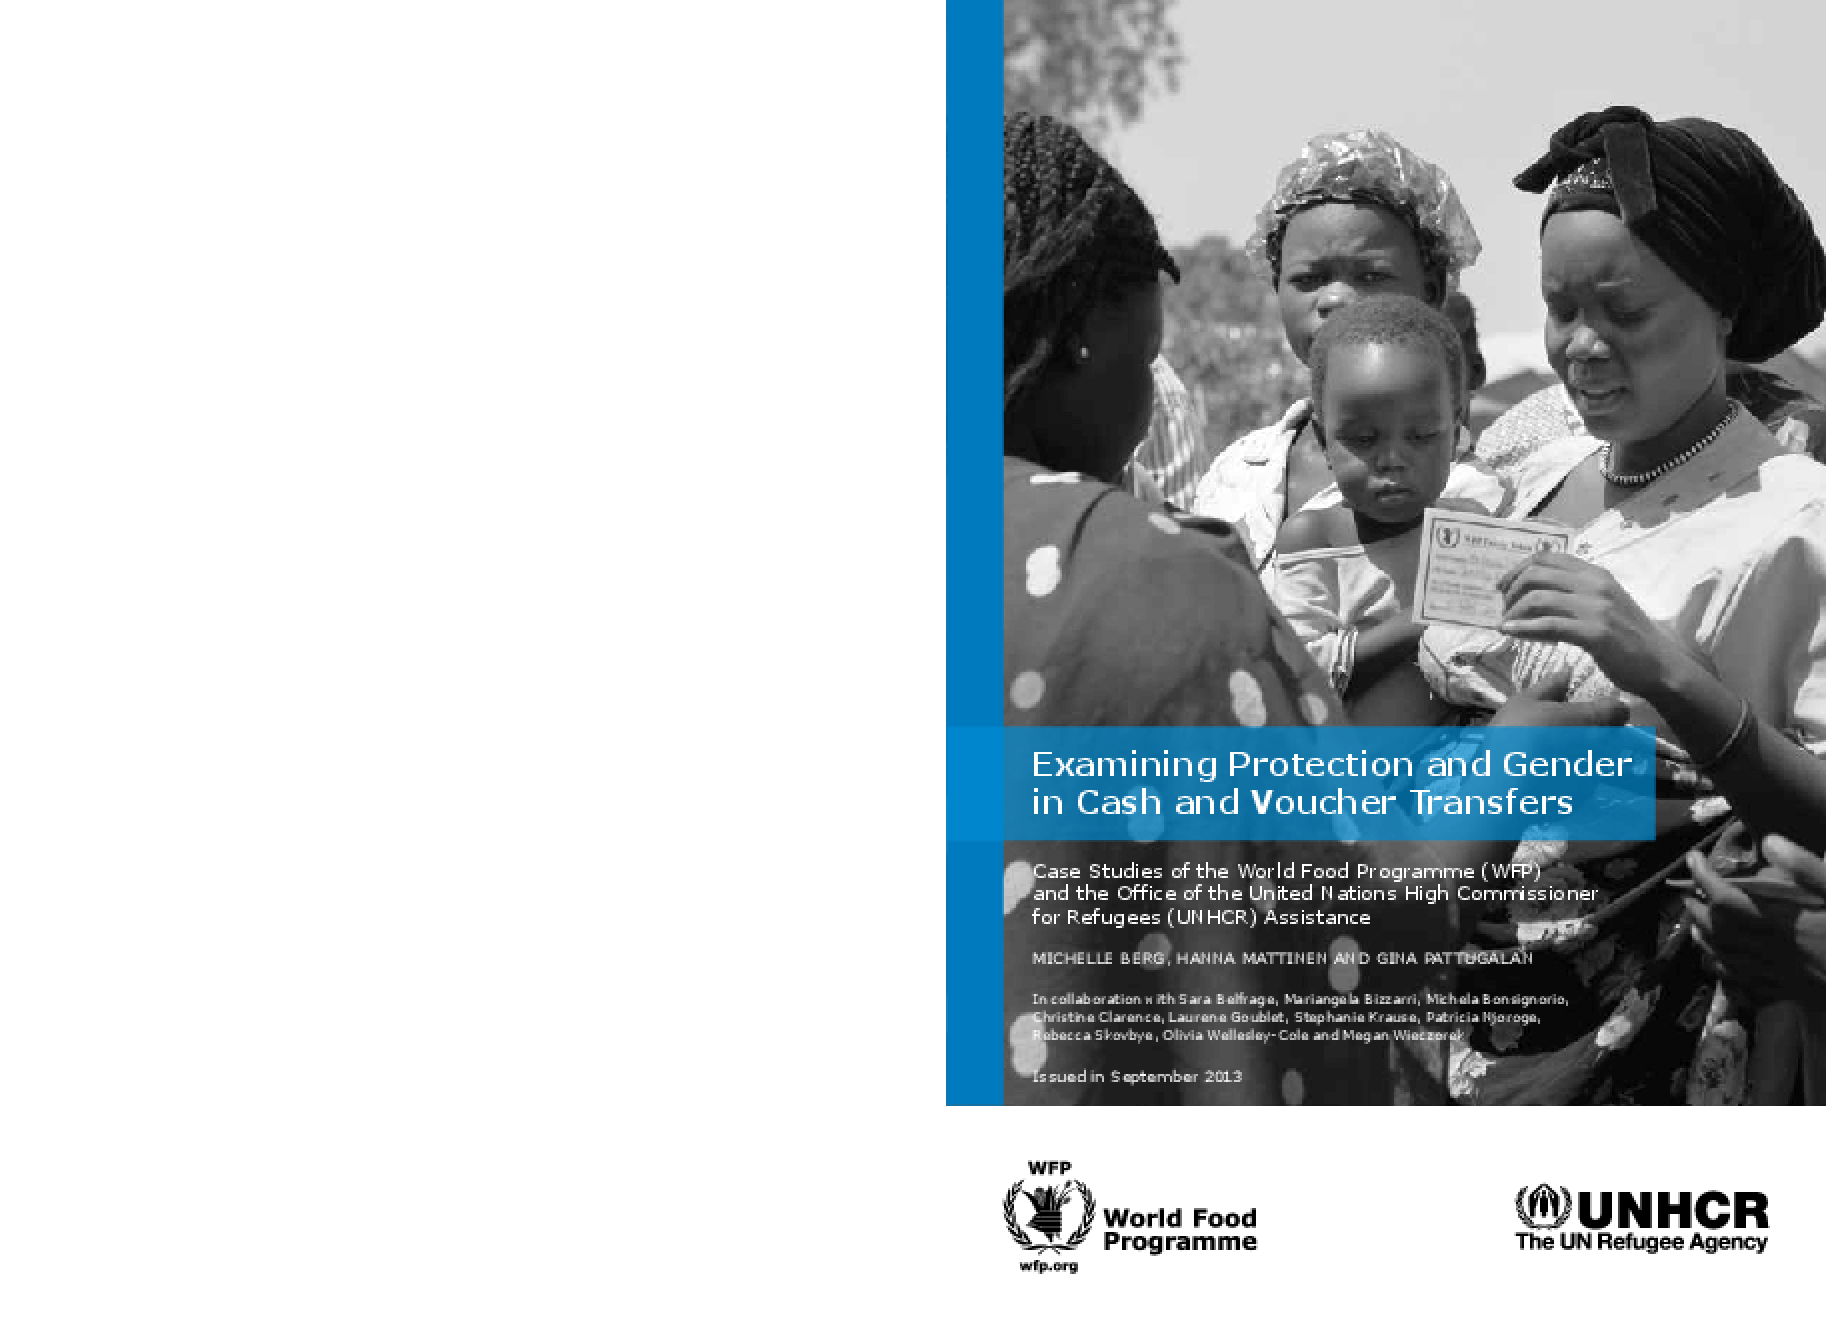 Examining Protection and Gender in Cash and Voucher Transfers: Case Studies of the World Food Programme (WFP) and the United Nations High Commissioner for Refugees (UNHCR)